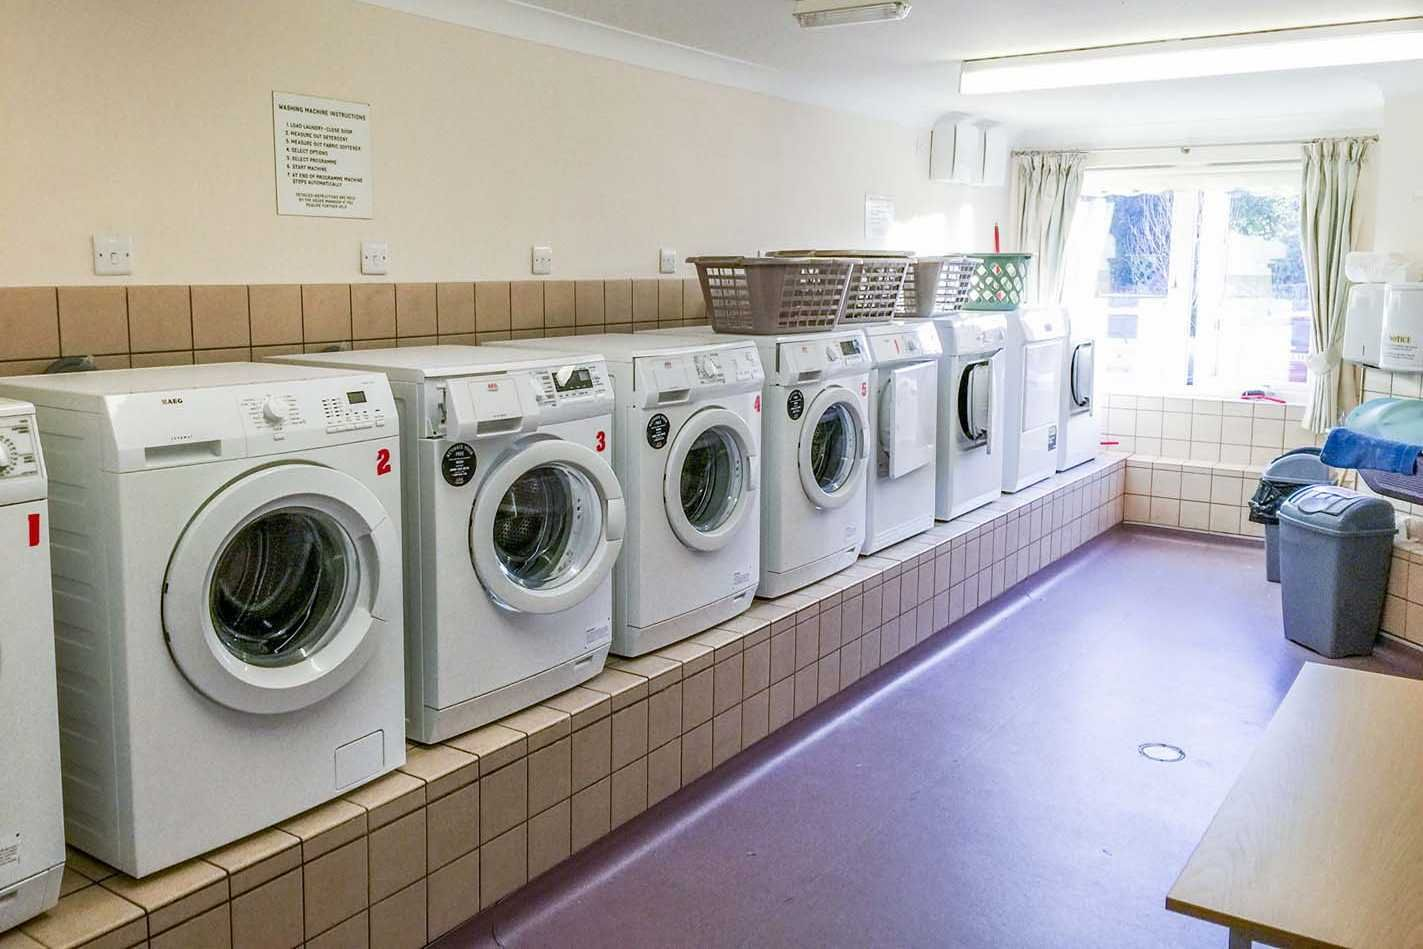 2 bed for sale in East Preston - Communal laundry (Property Image 10)